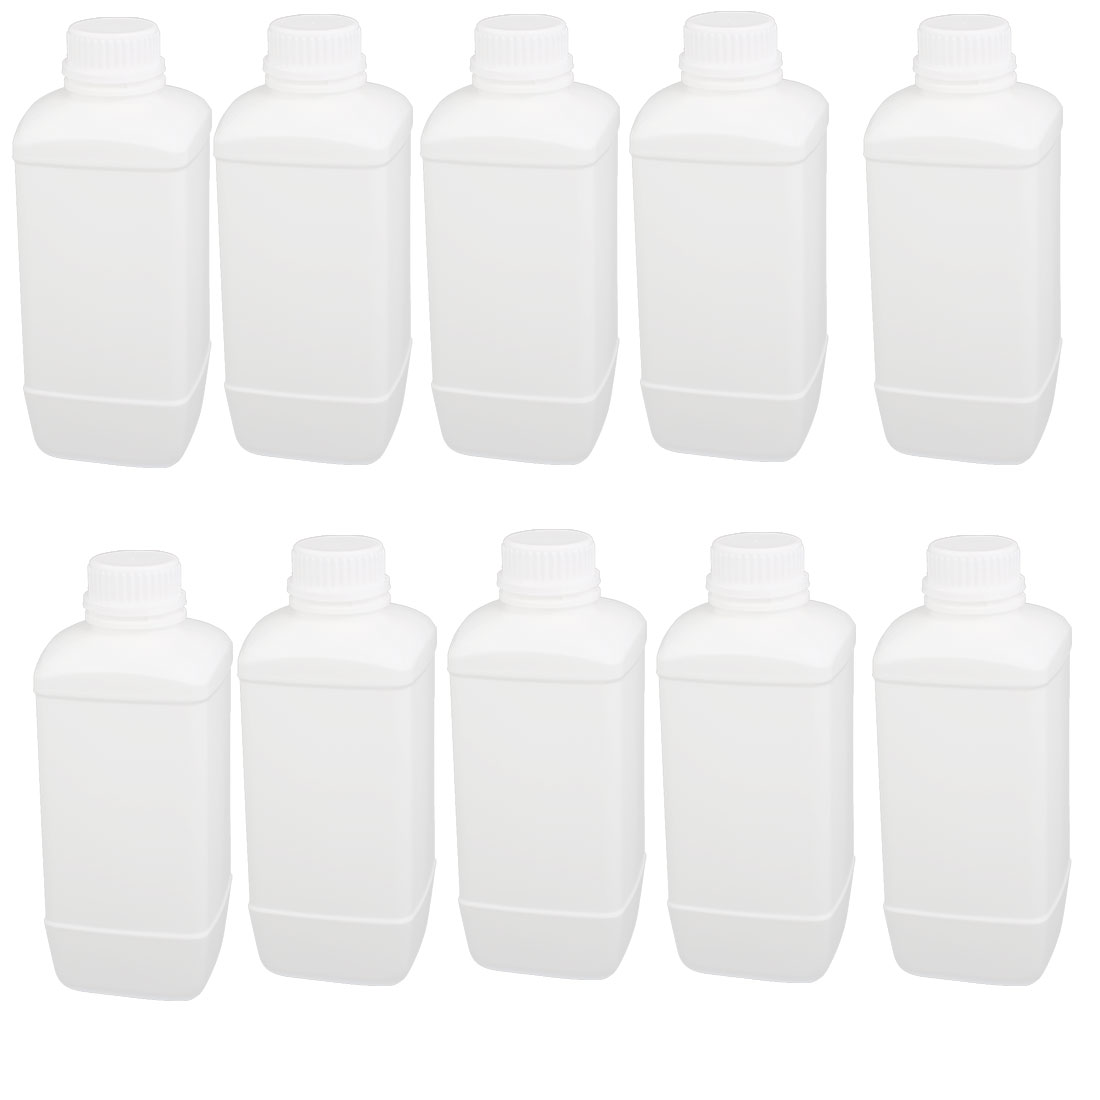 1000ml 28mm Dia Mouth HDPE Plastic Oblong Shaped Graduated Bottle White 10pcs